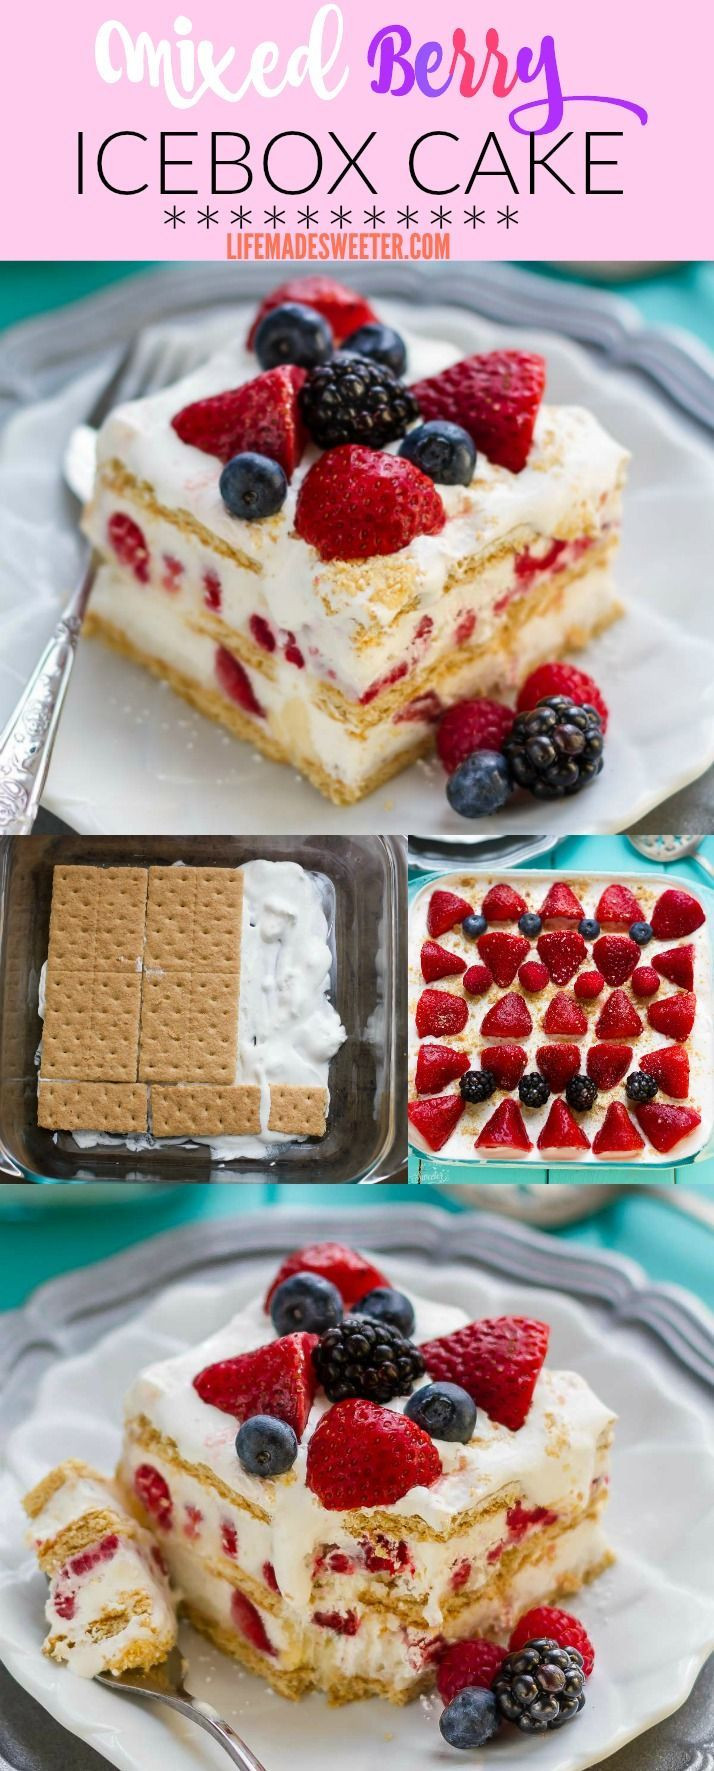 Popular Summer Desserts  180 best Summertime images on Pinterest